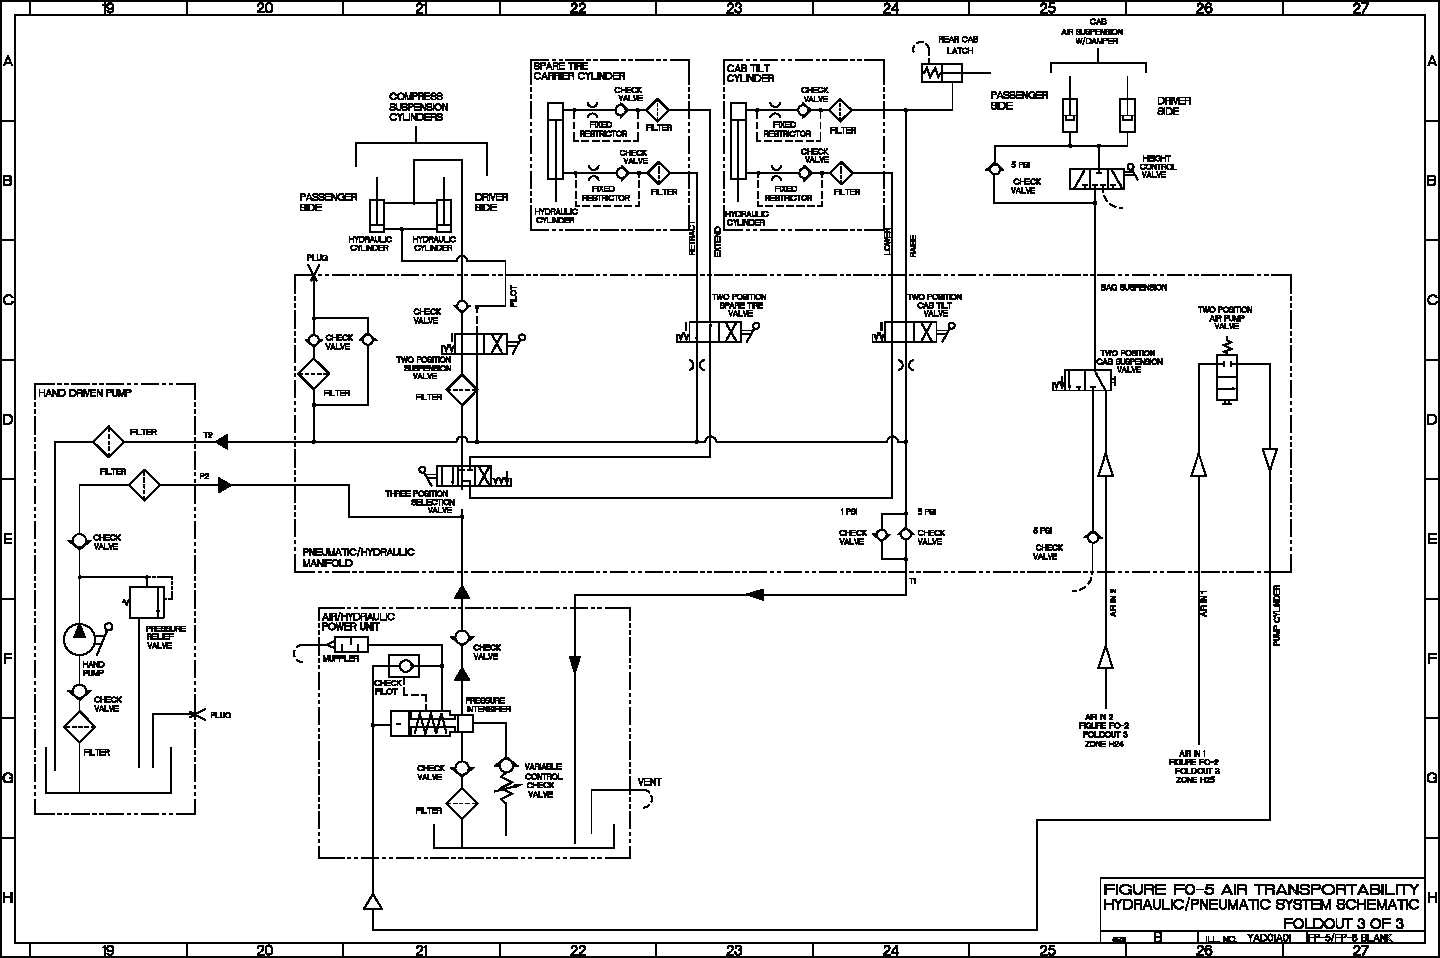 TM 9 2320 365 20 4 939 likewise Ezgo Txt Wiring Diagram Wire Cart Ez 36 Volt Club Car Golf Battery Yamaha G 2 Gas 88 2 Stroke 89 Diagrams Electrical 86 Rxv Starter 97 Schematic Recent Captures likewise Schematics wiring likewise Lm358 As  parator Output Voltage Less Than Supply Voltage besides 64429 Building And Installing A Emf Home Protection System. on electrical schematic